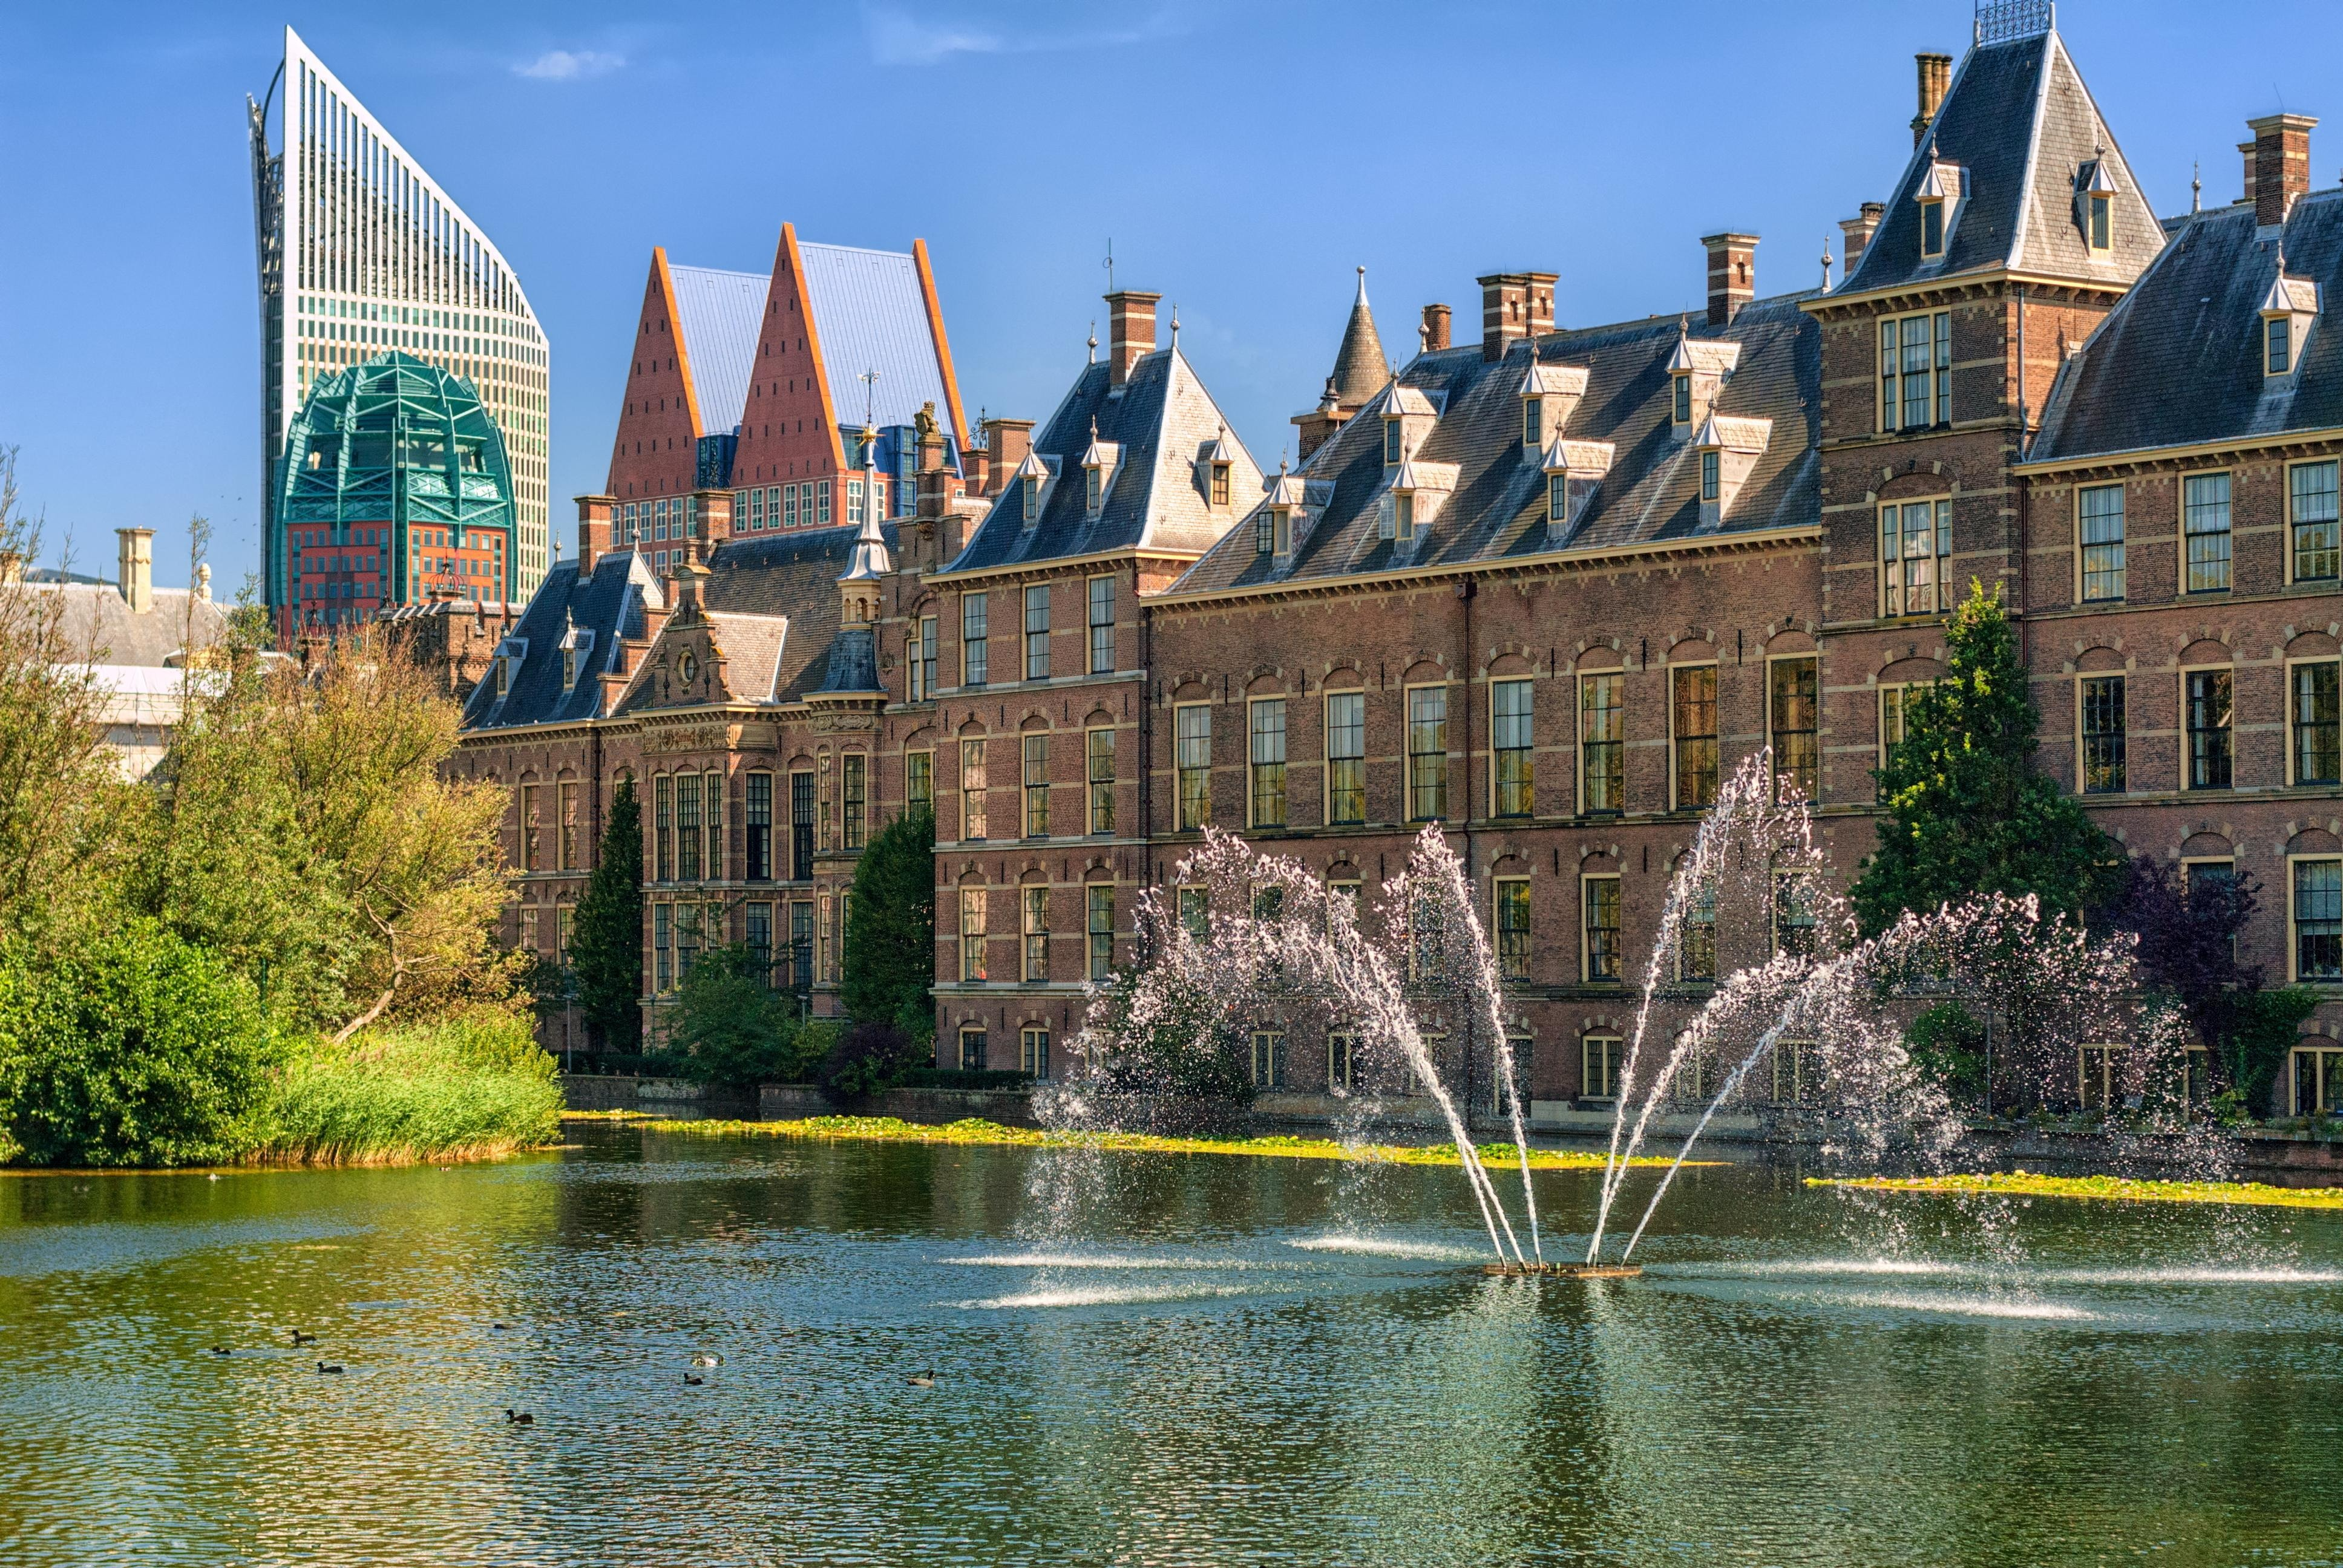 How to Spend 3 Days in The Hague